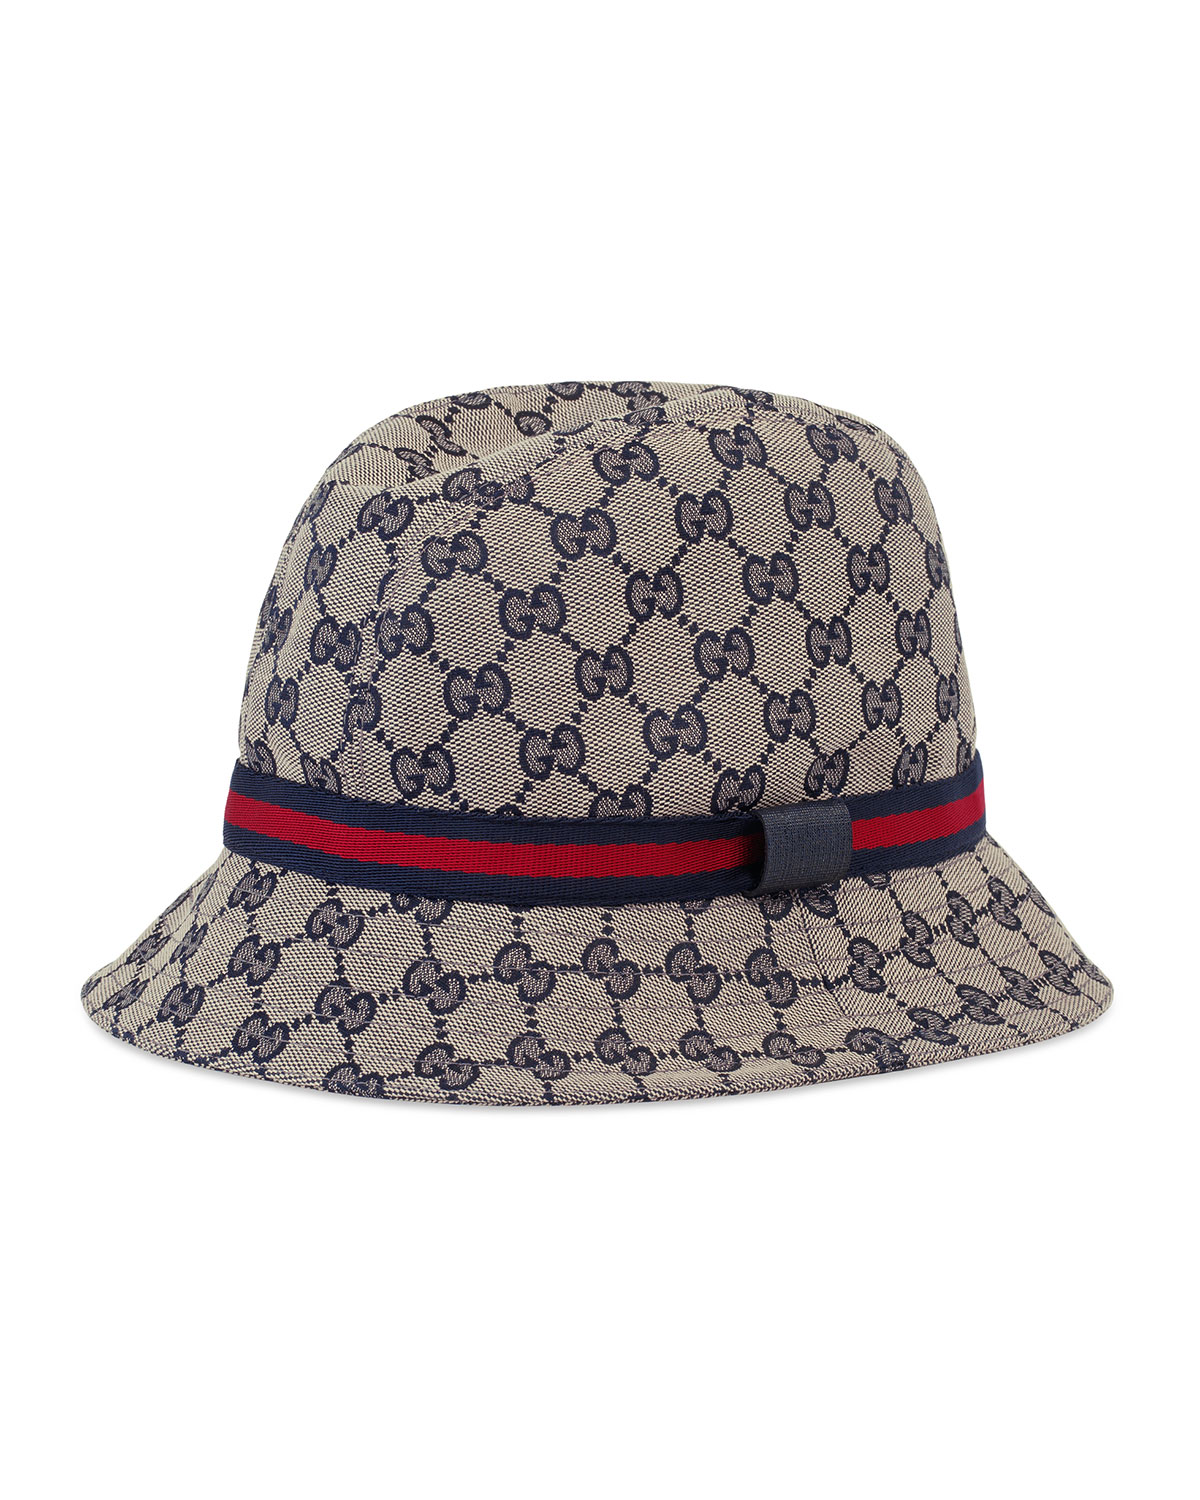 bba60f20 Gucci Kids' GG Supreme Canvas Bucket Hat w/ Web Hat Band | Neiman Marcus